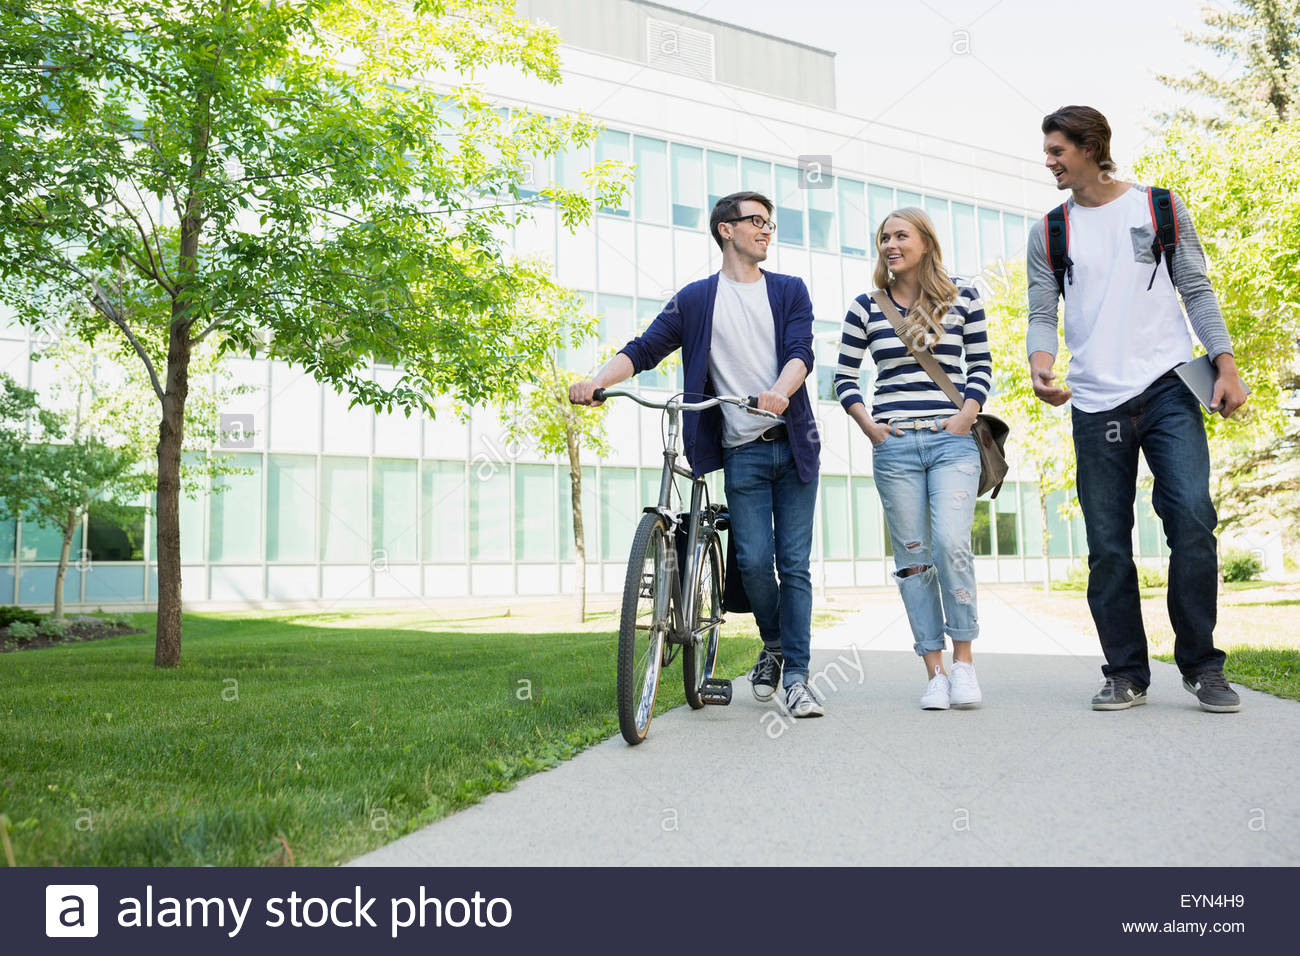 College students with bicycle walking on campus sidewalk - Stock Image